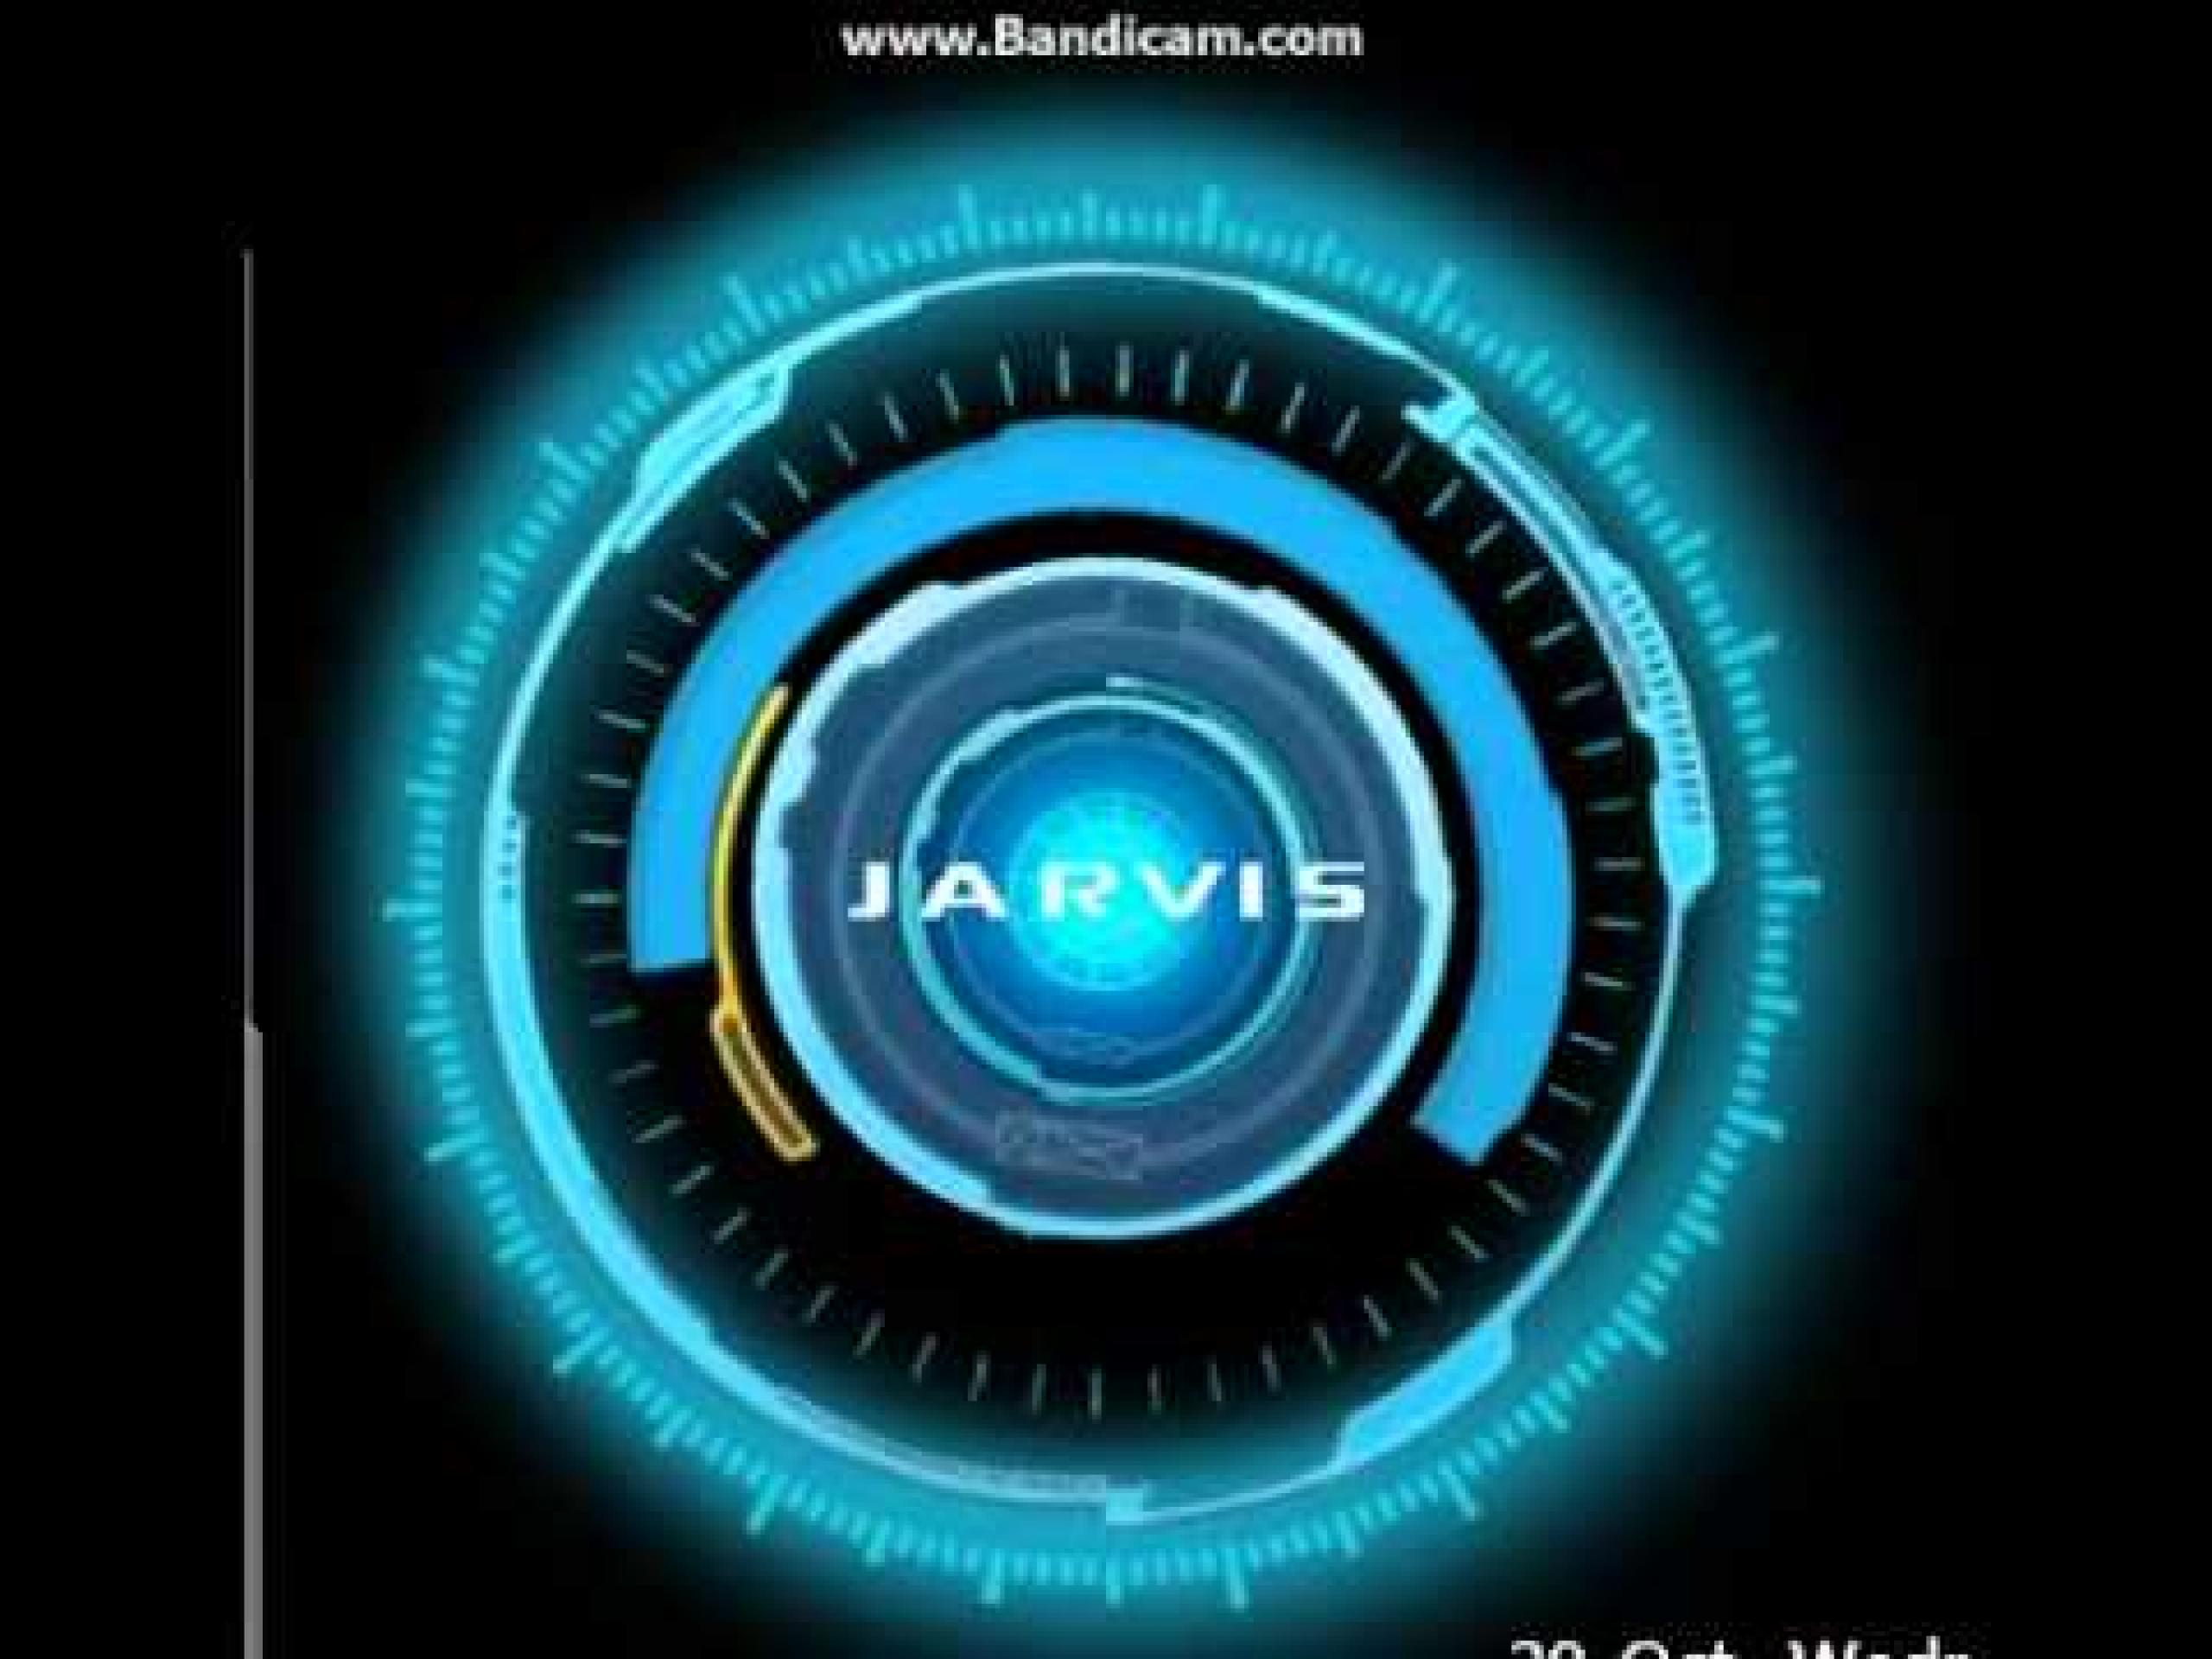 Animated Jarvis Wallpaper Circle 2971282 Hd Wallpaper Backgrounds Download